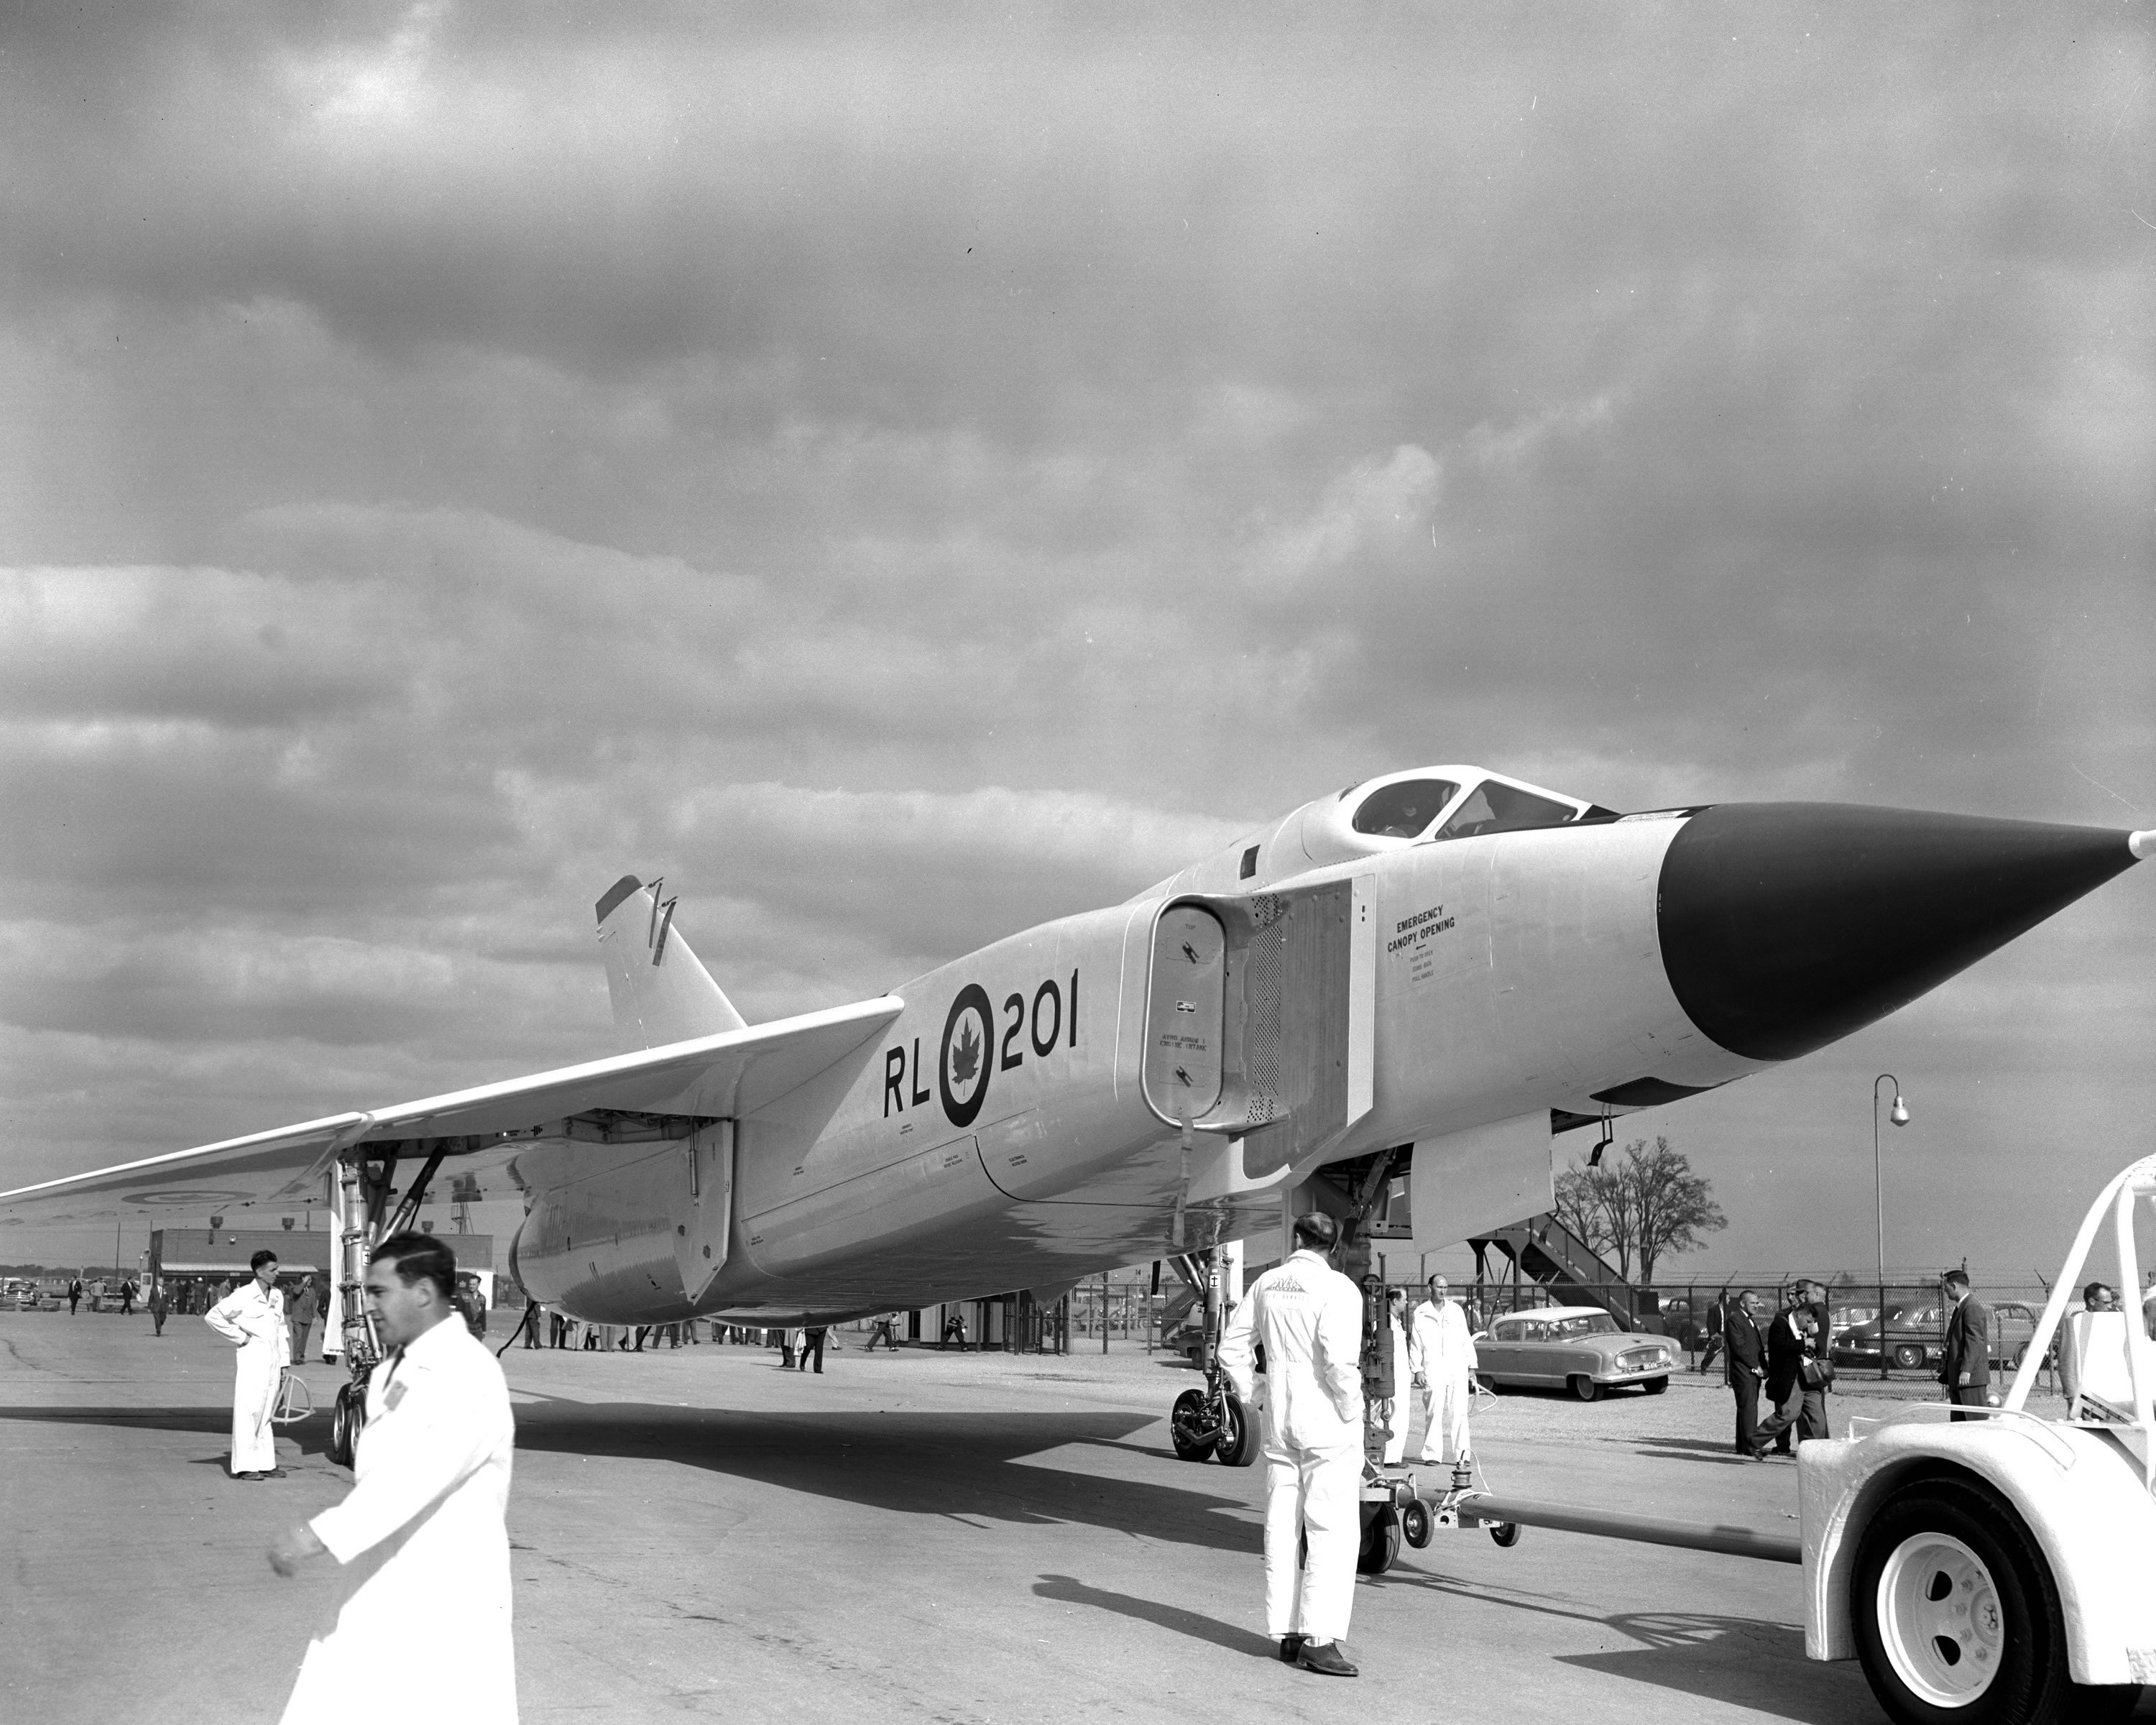 avro arrow revolutionized the aircraft industry  avro arrow revolutionized the aircraft industry utilization of ti